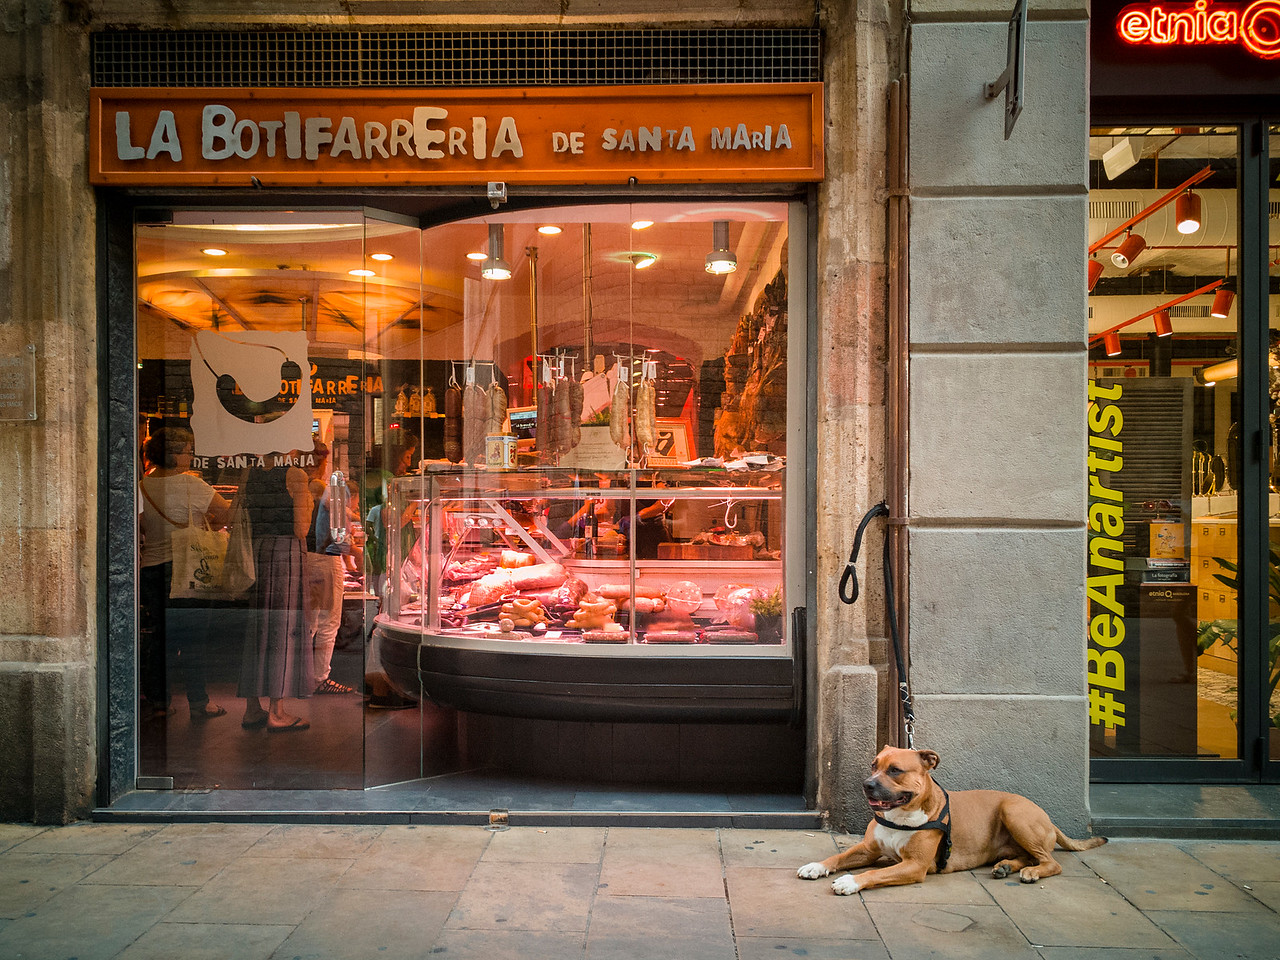 At the butcher's